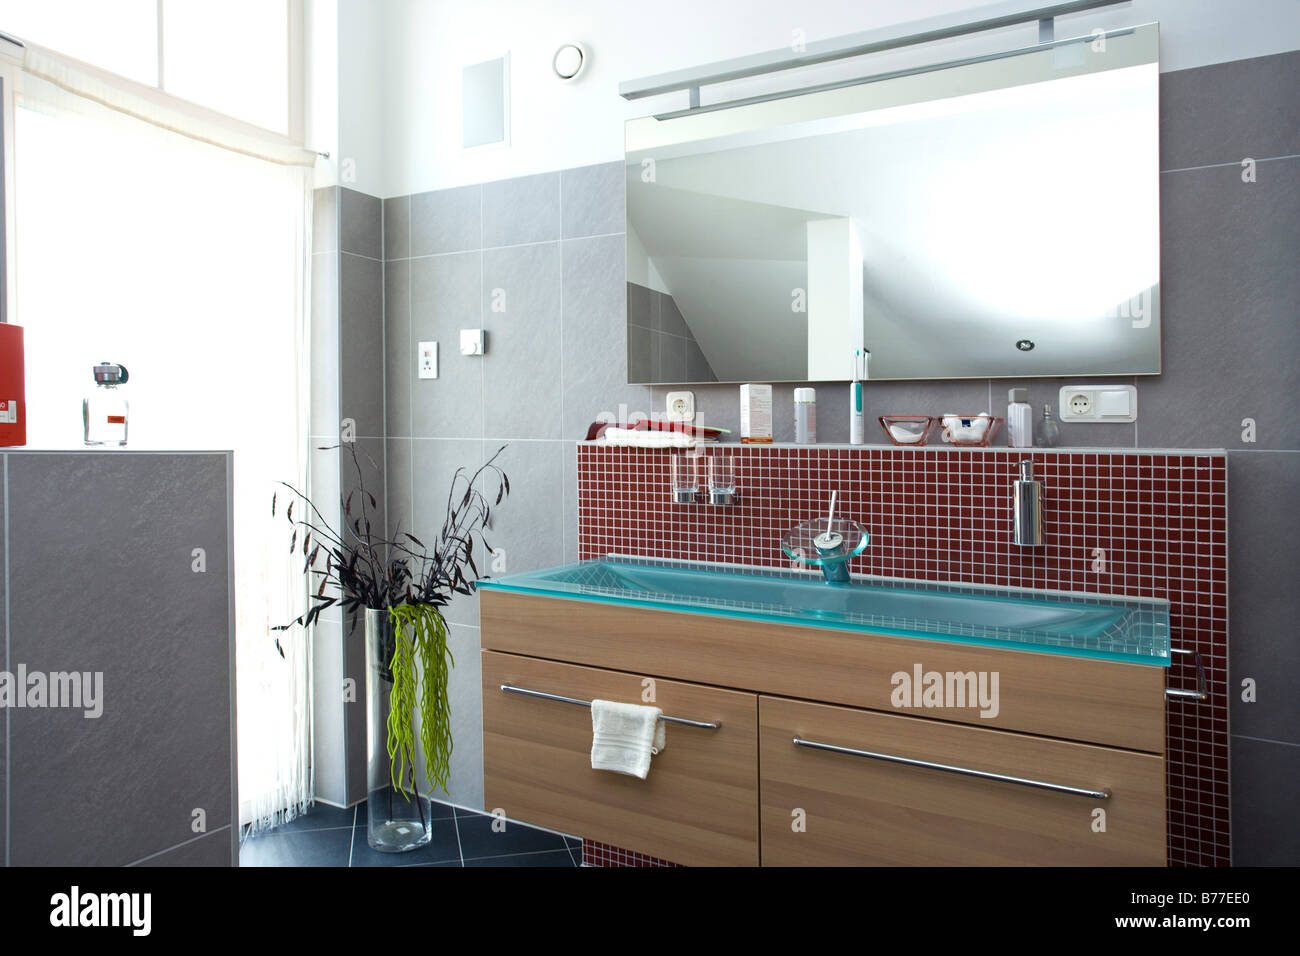 Bilder Badezimmer Modern Modernes Badezimmer Modern Bath Room Stock Photo 21677992 Alamy